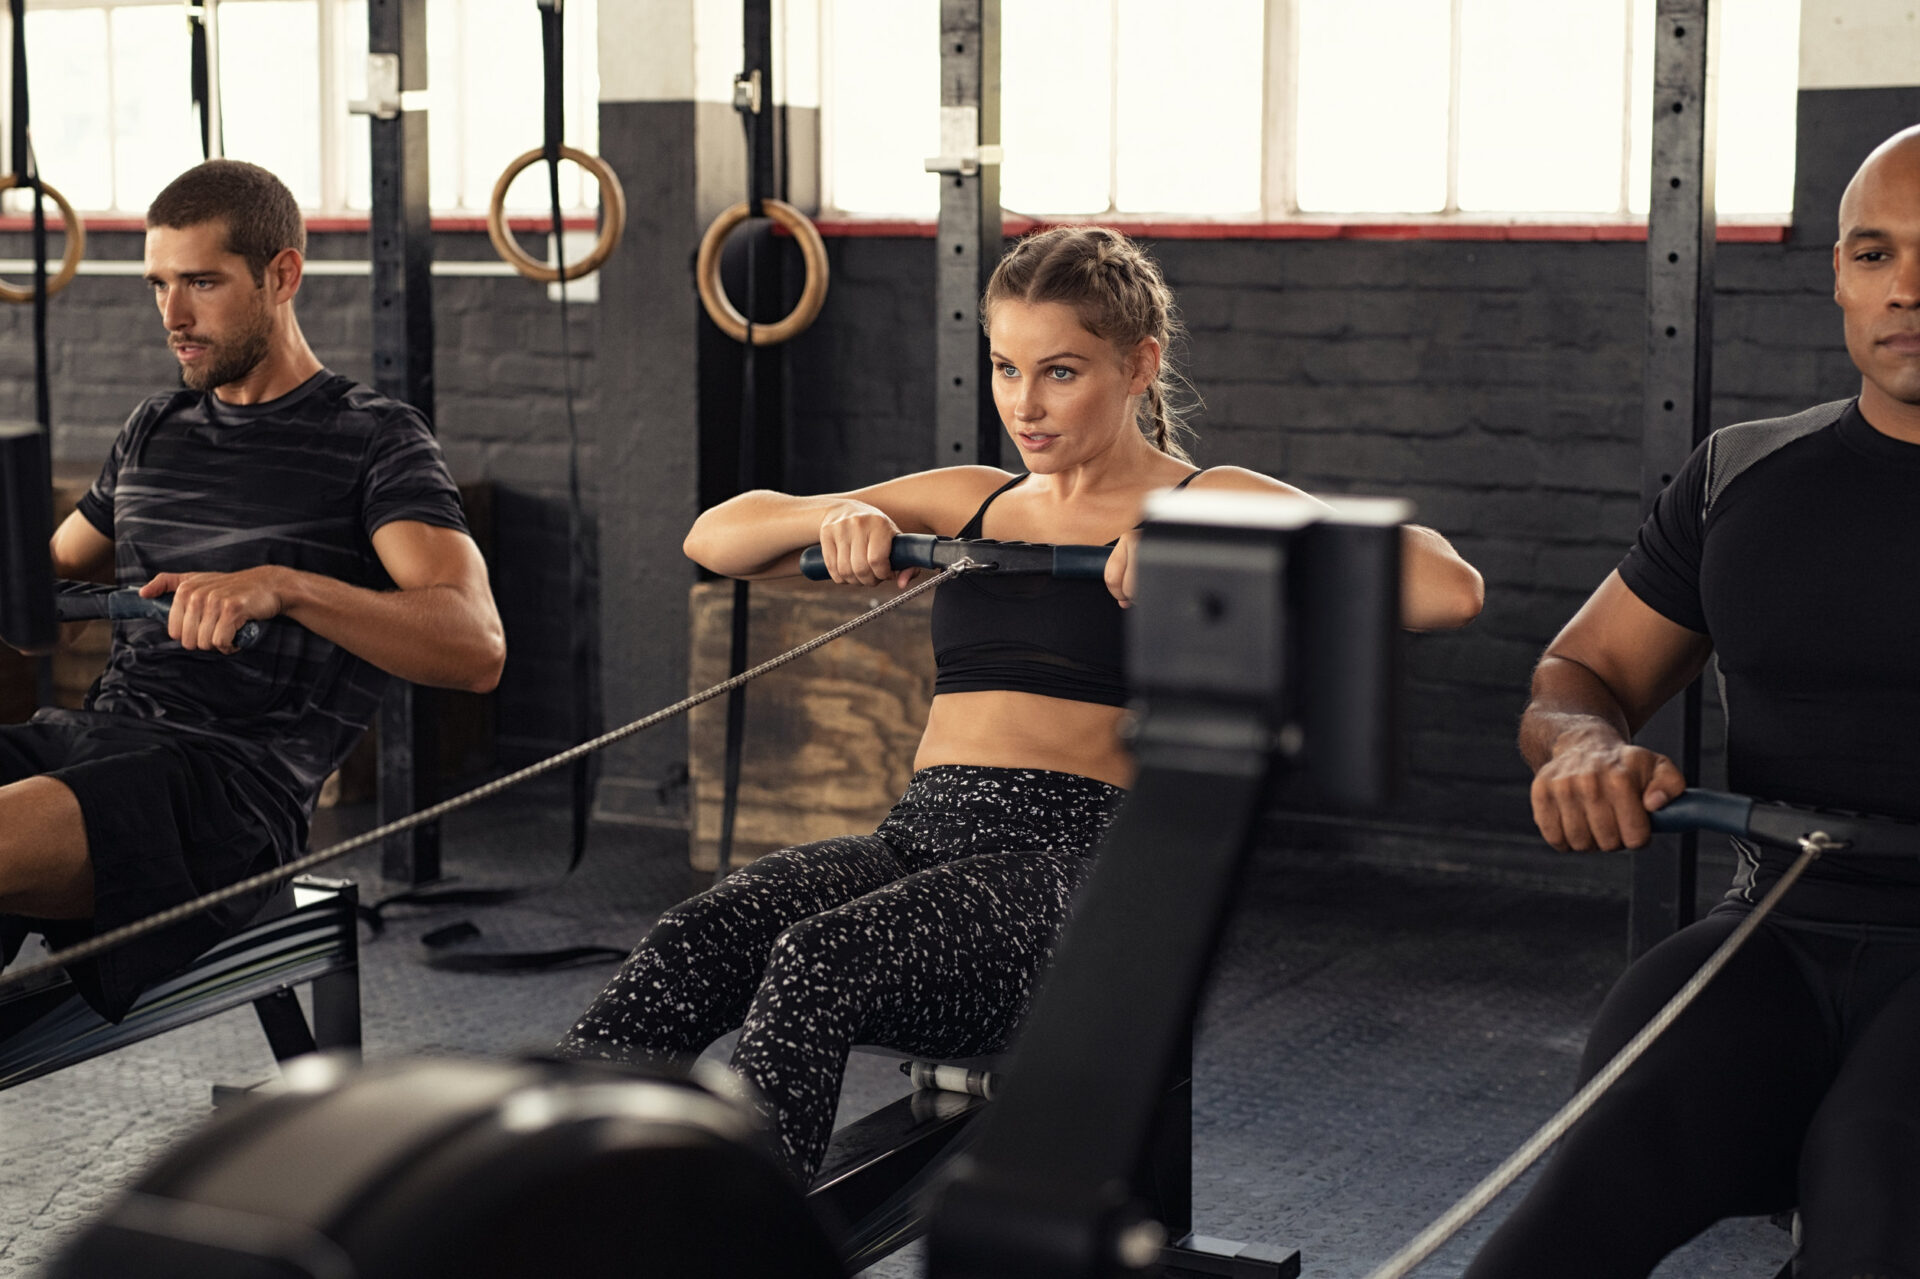 Men and woman in gym using rowing machine